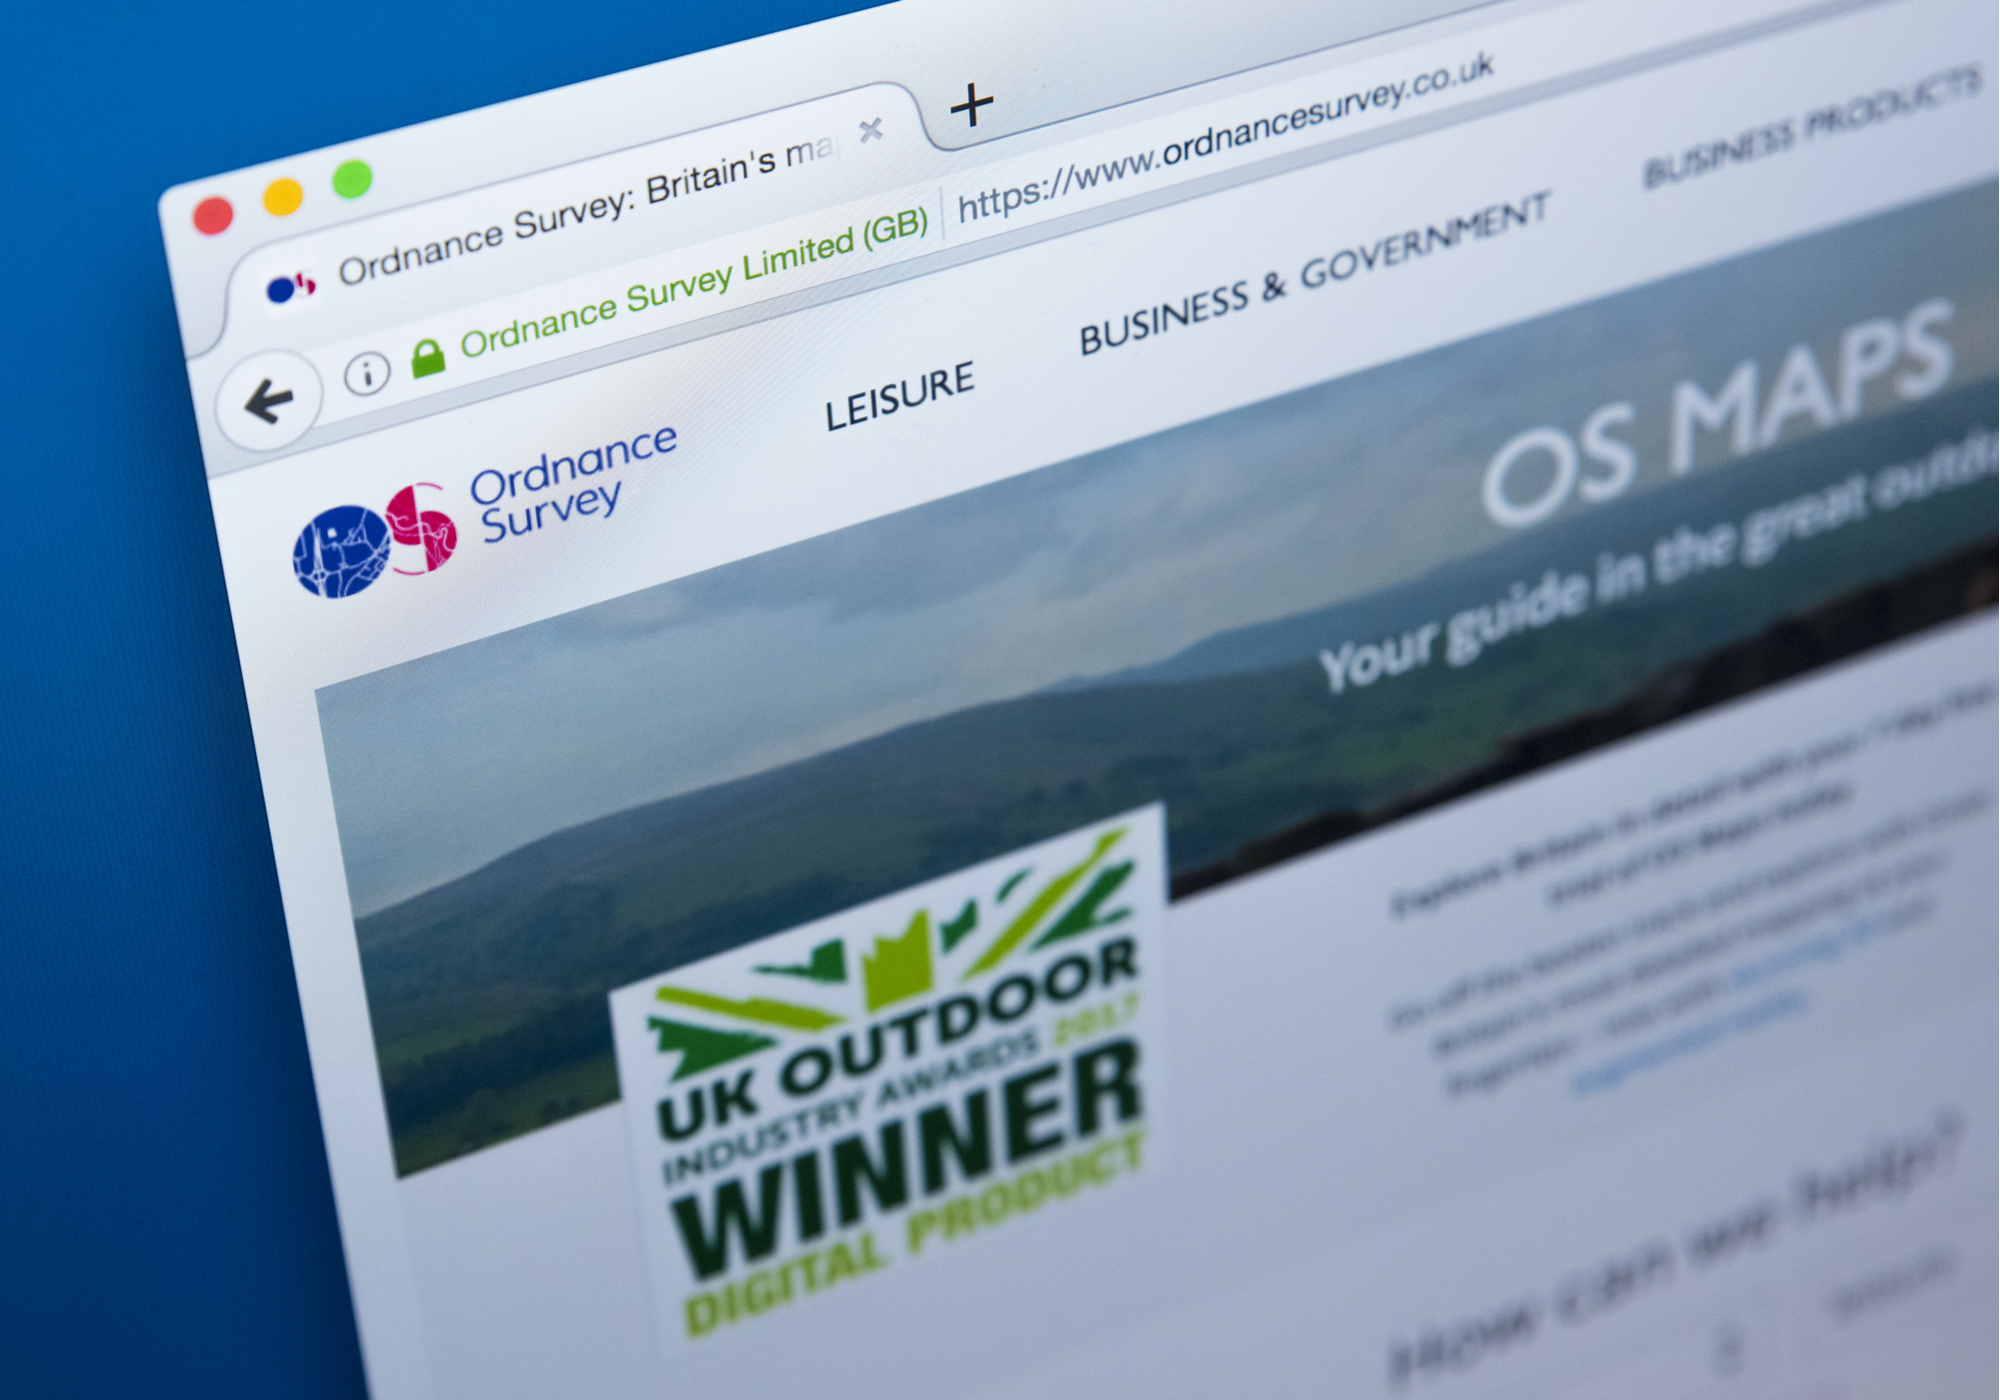 Exclusive: Ordnance Survey hacked, exposing 1,000 employees' data